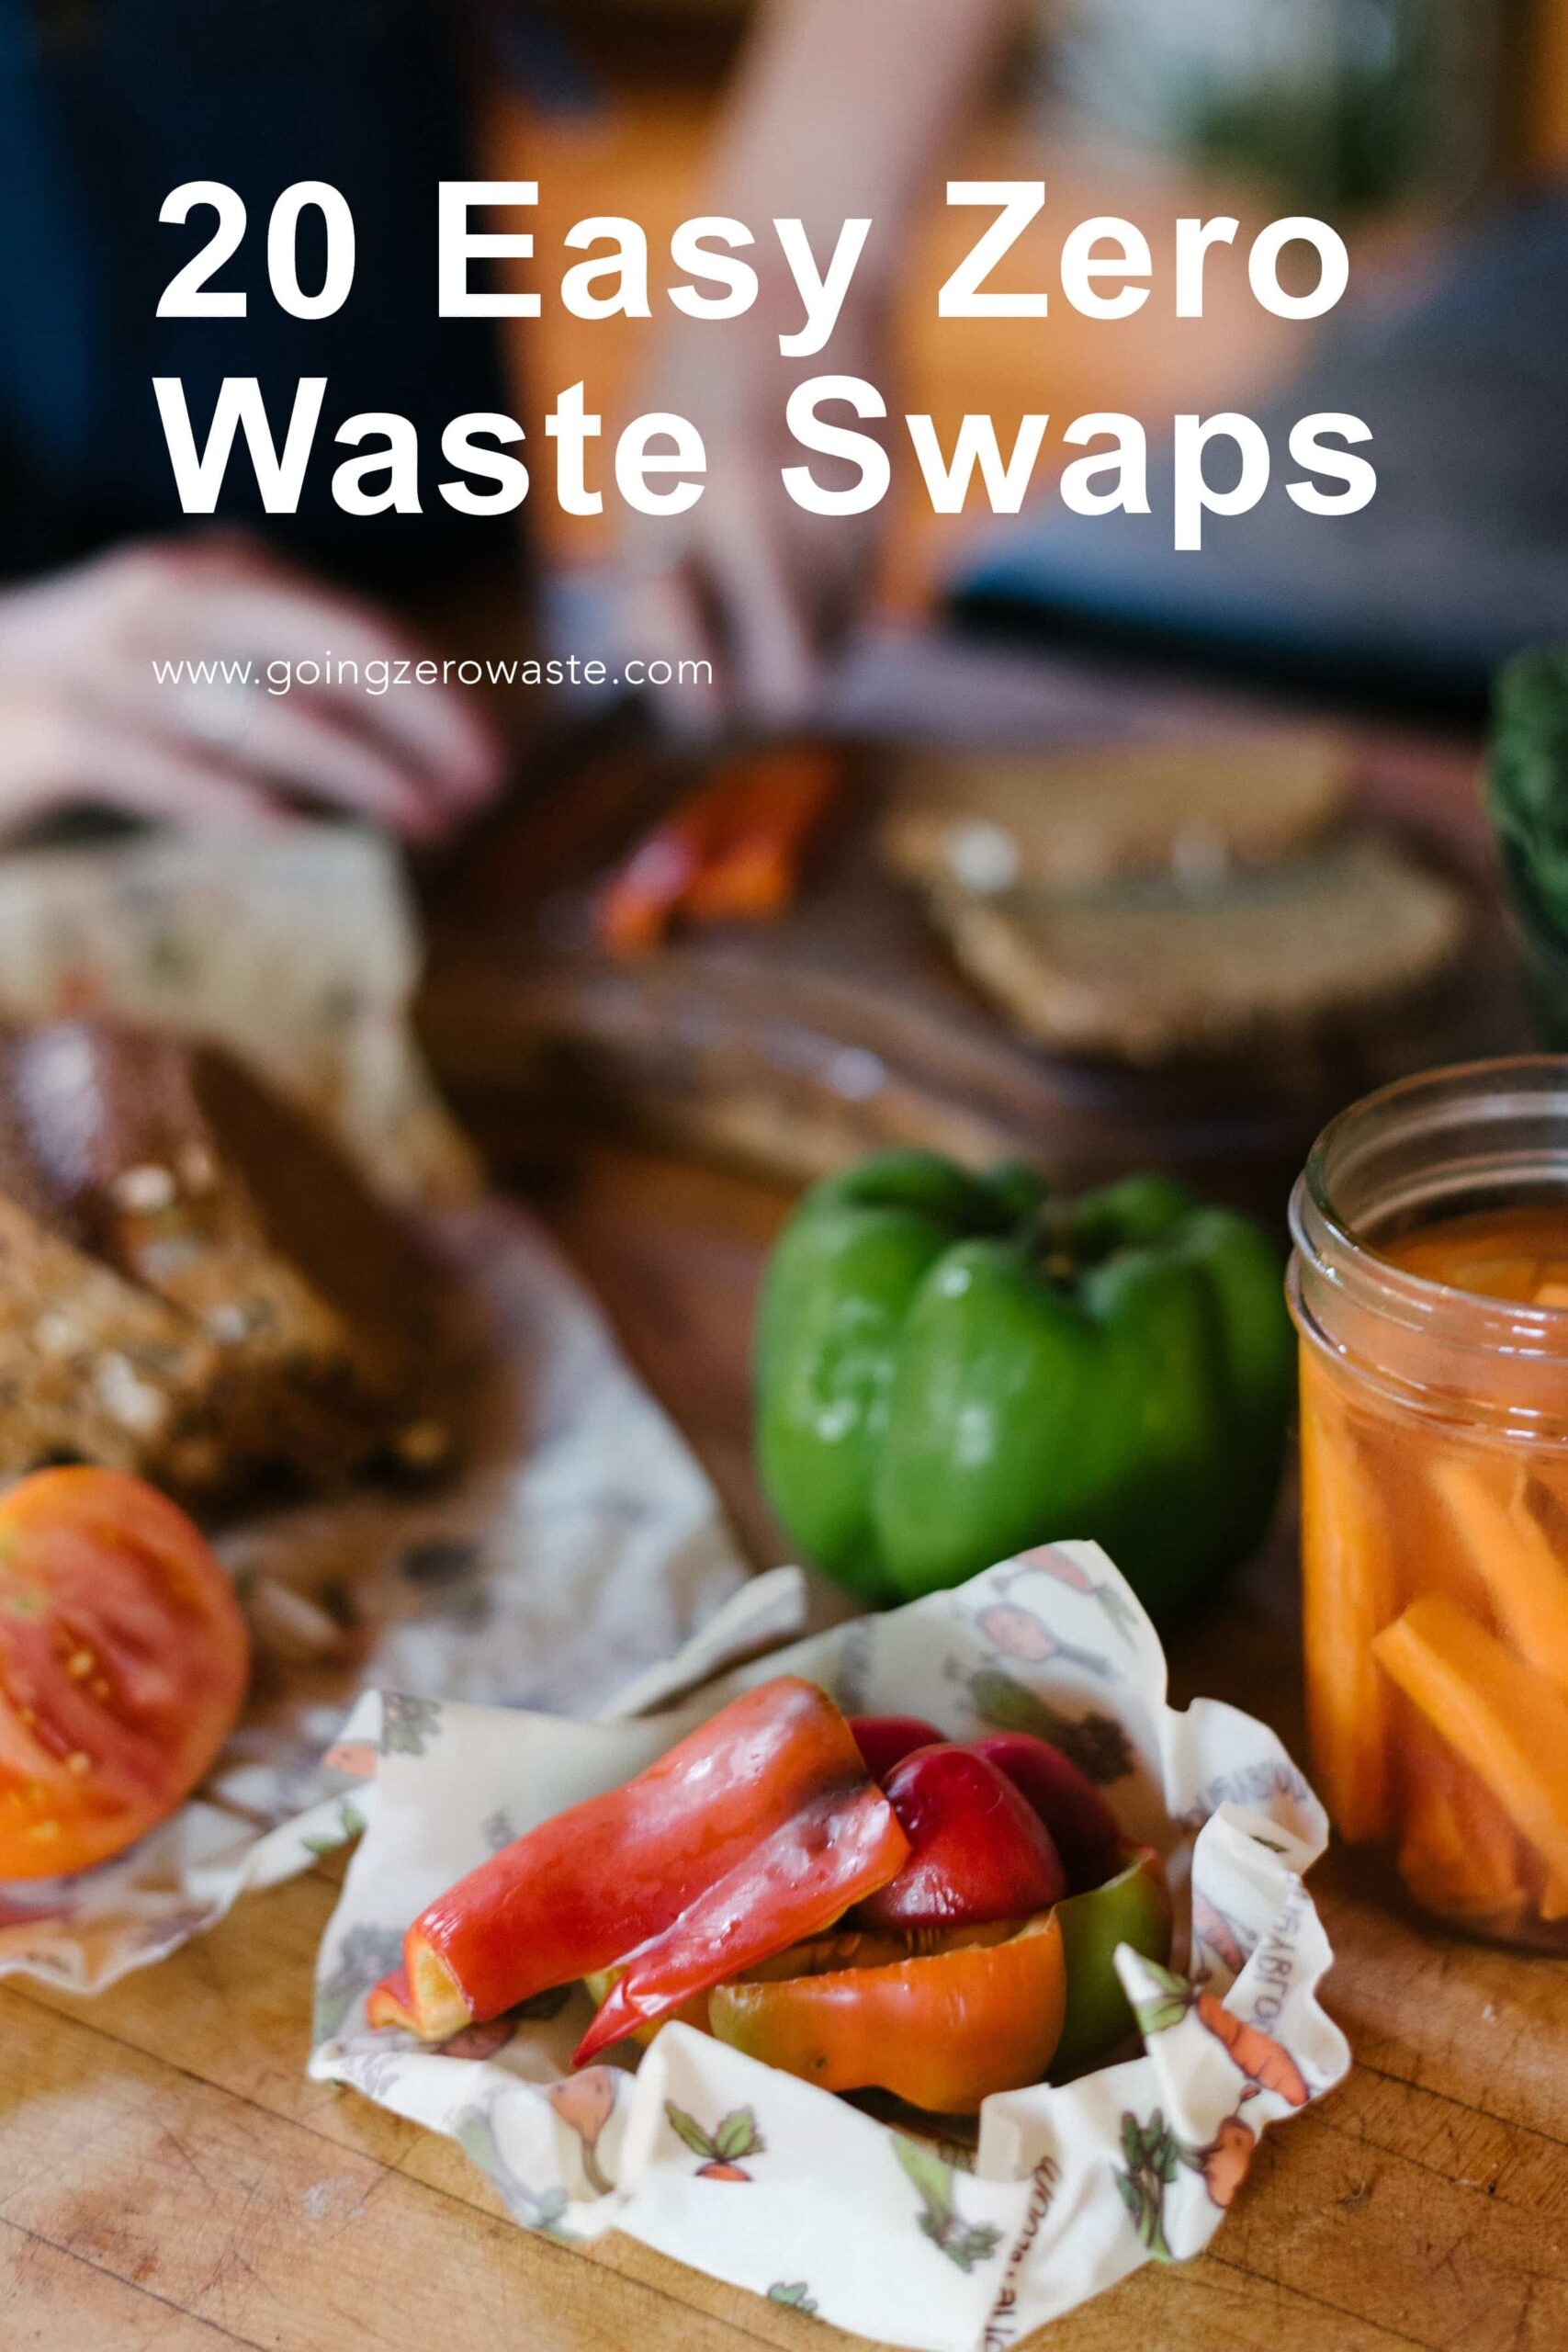 20 Easy Zero Waste Swaps